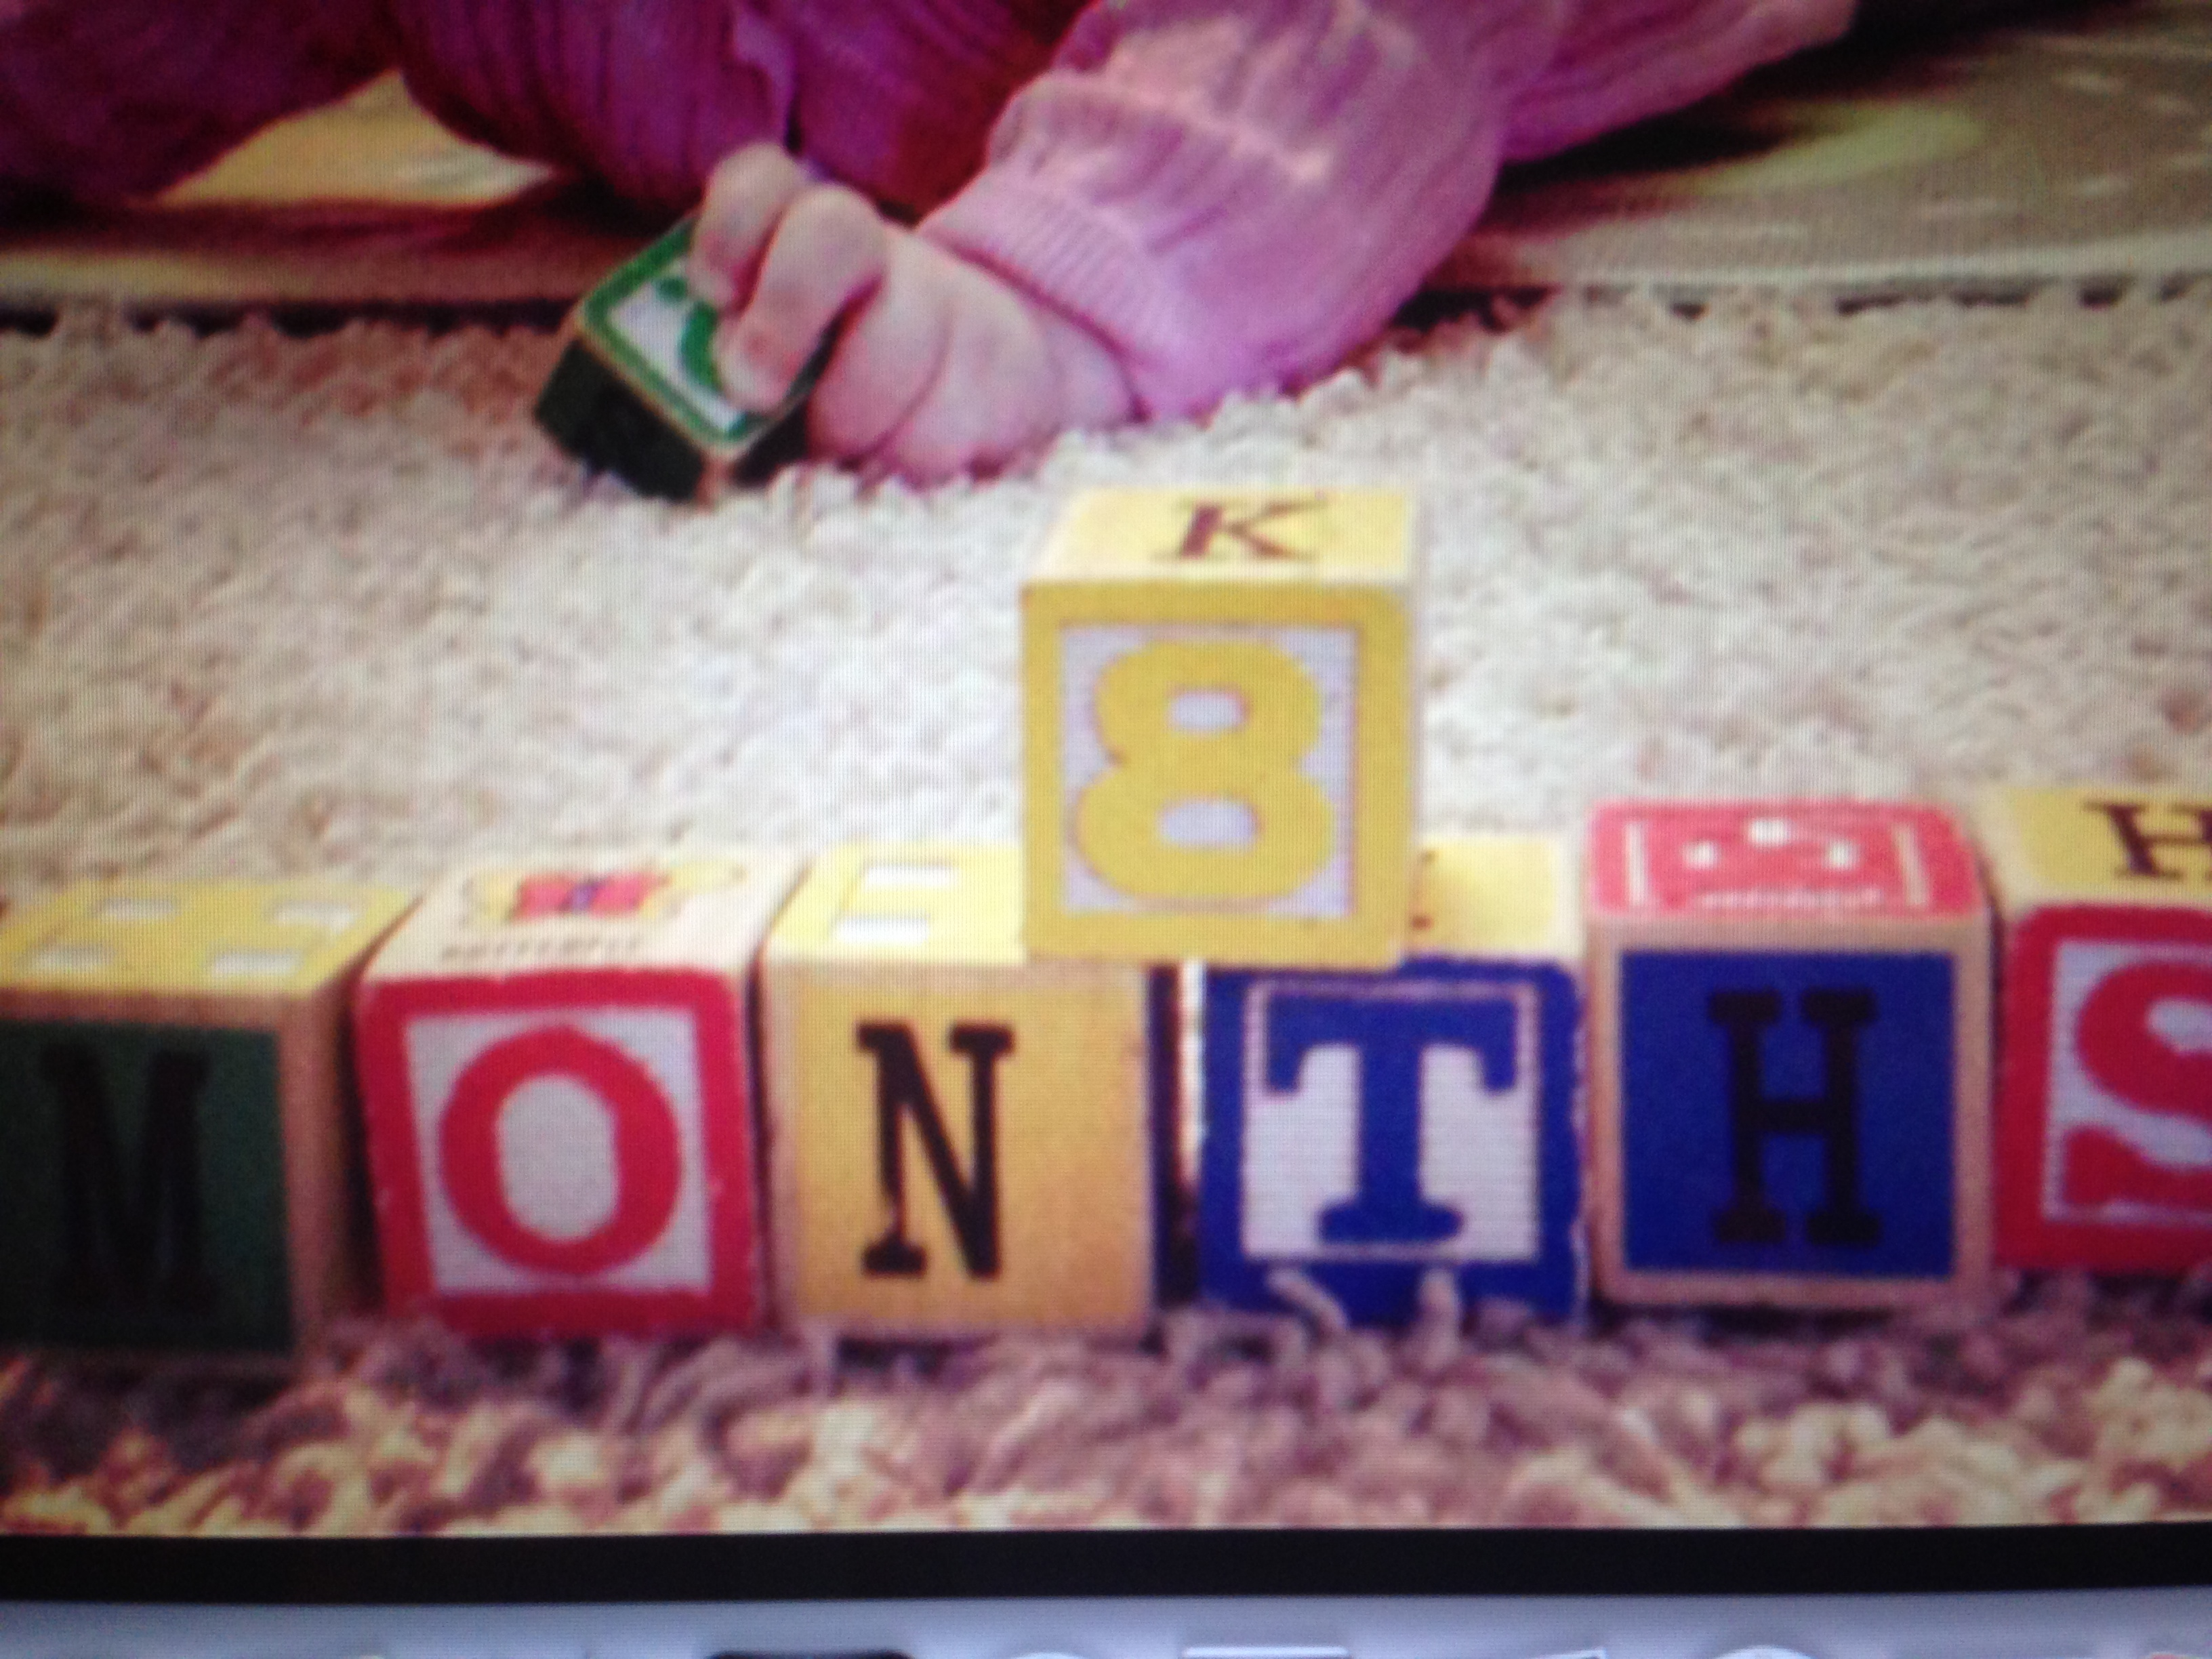 Today's Hint: 3 Clever Ways to Mark the First 12 Months in Photos